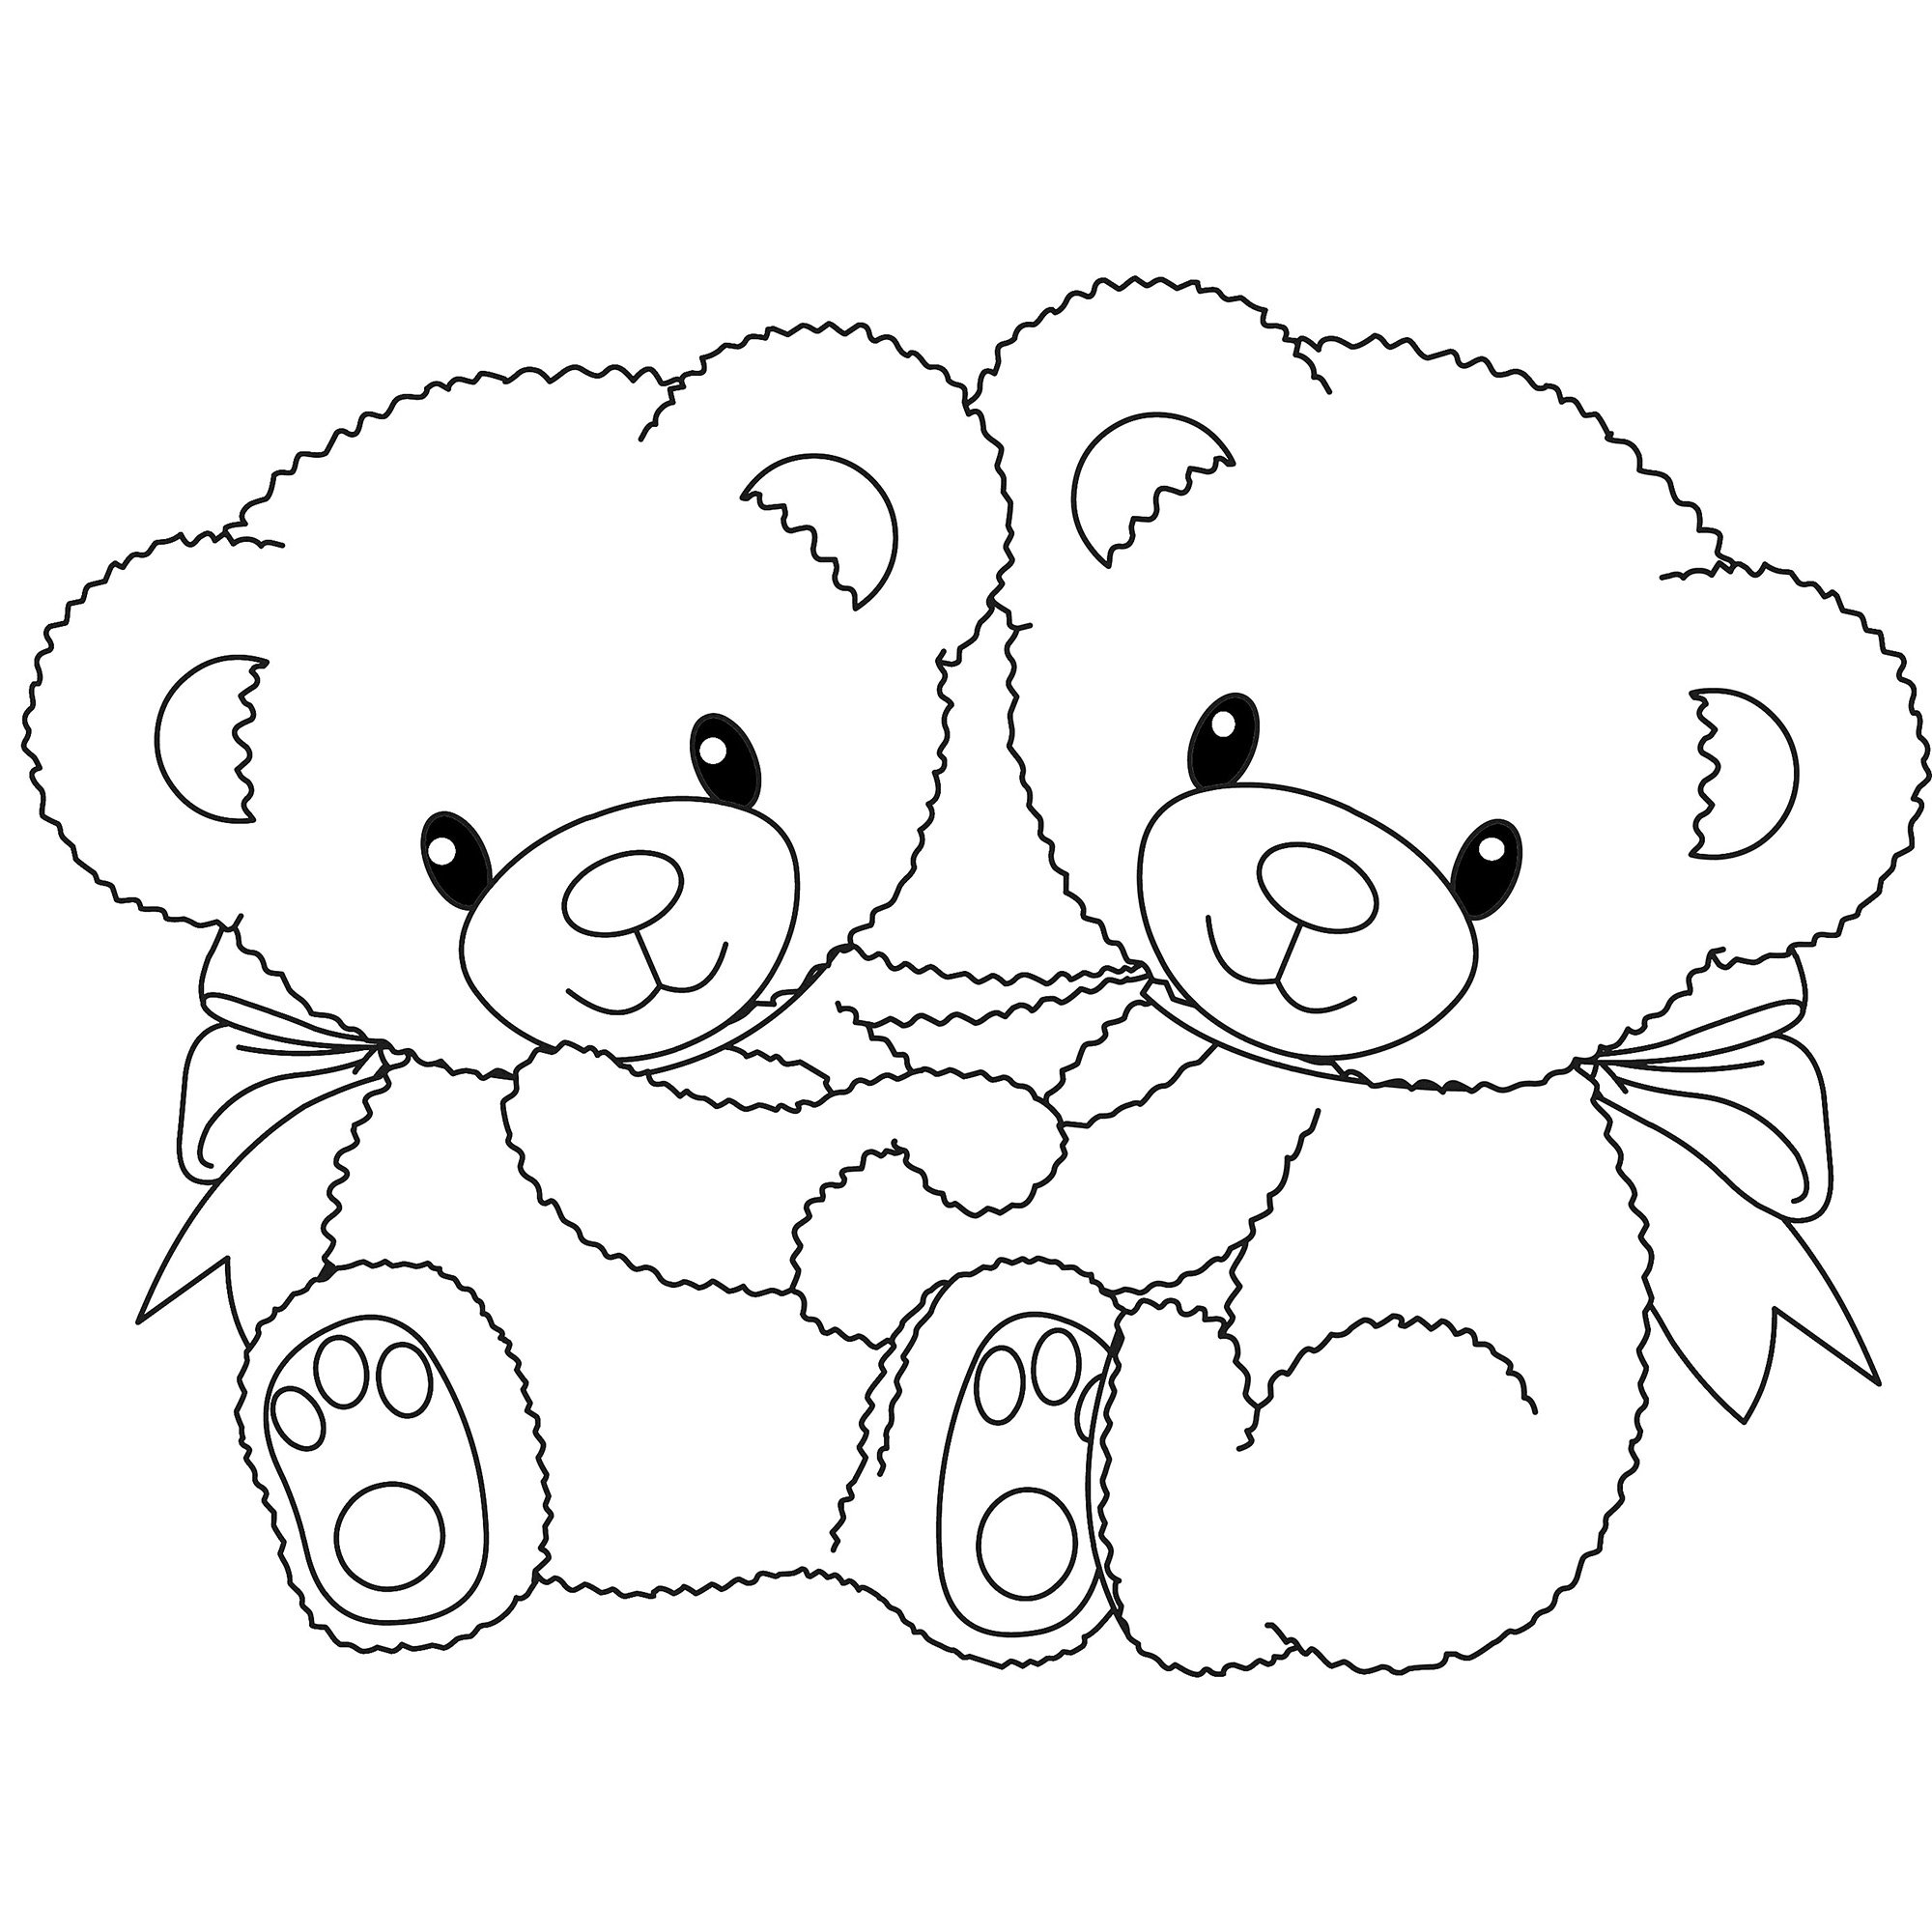 2000x2000 Two Cute Teddy Bears Drawings Drawn Love Teddy Bear